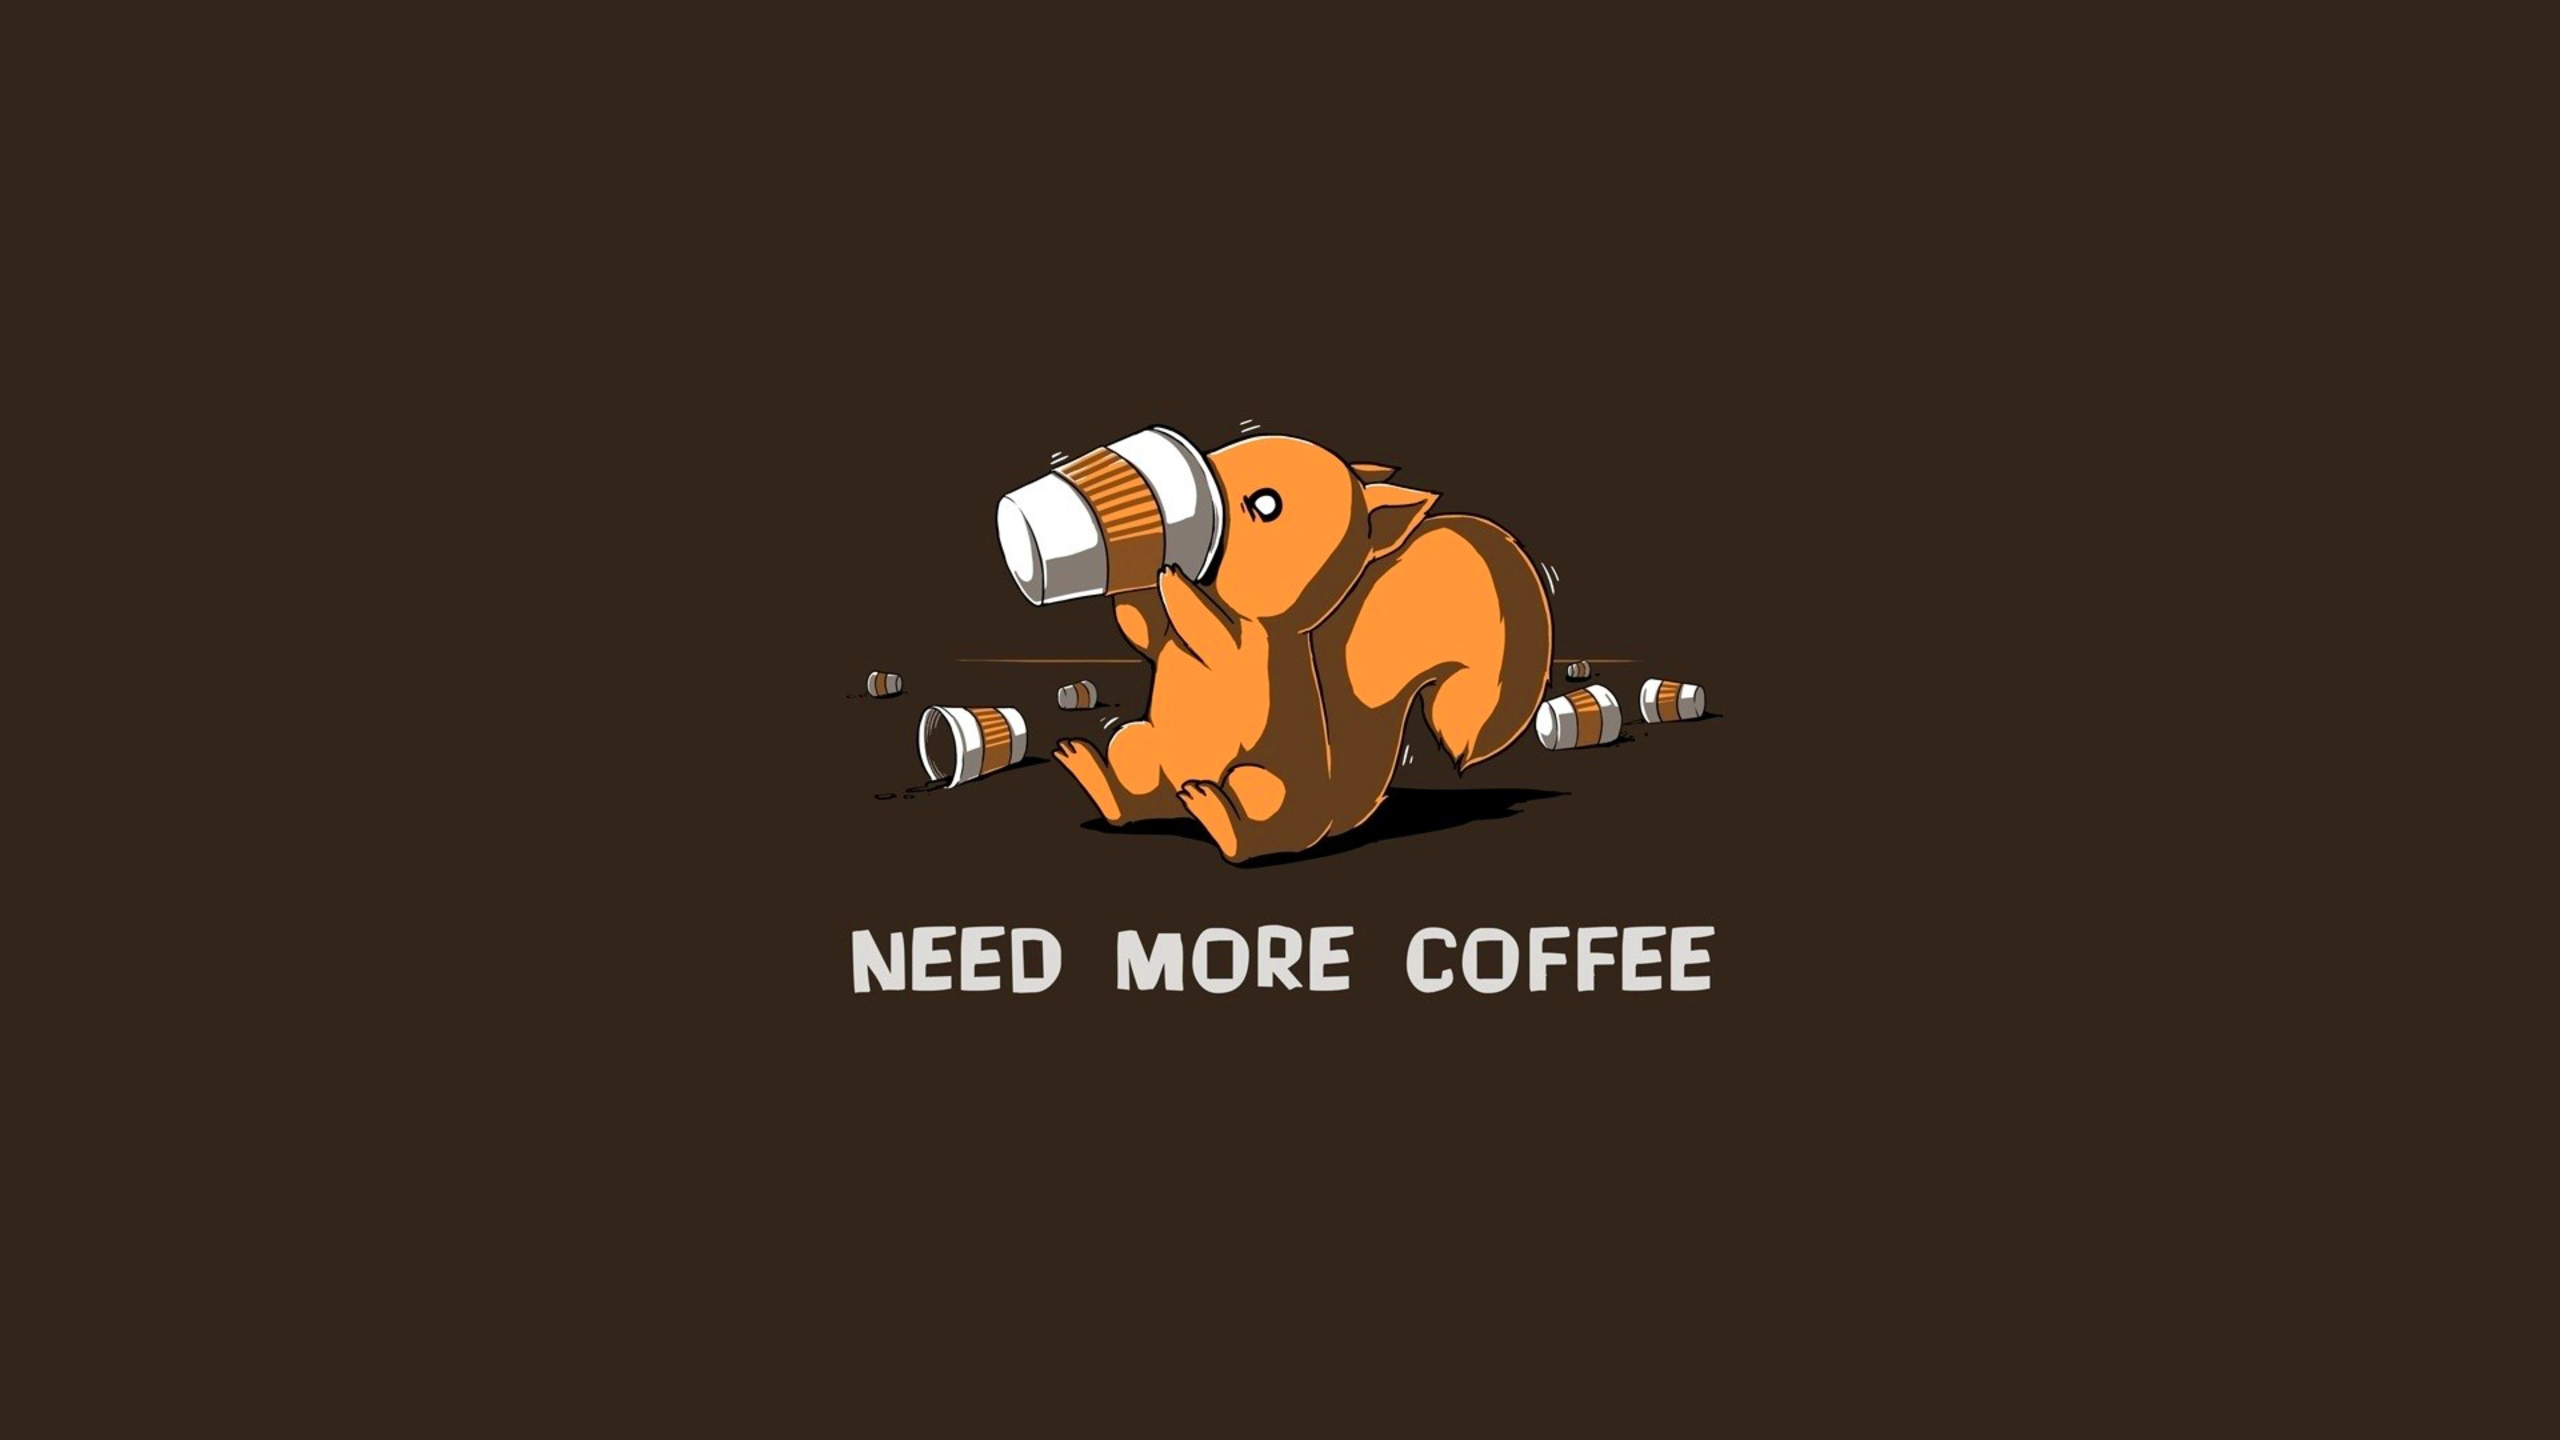 2560x1440 need more coffee programmer story 1440p resolution hd 4k